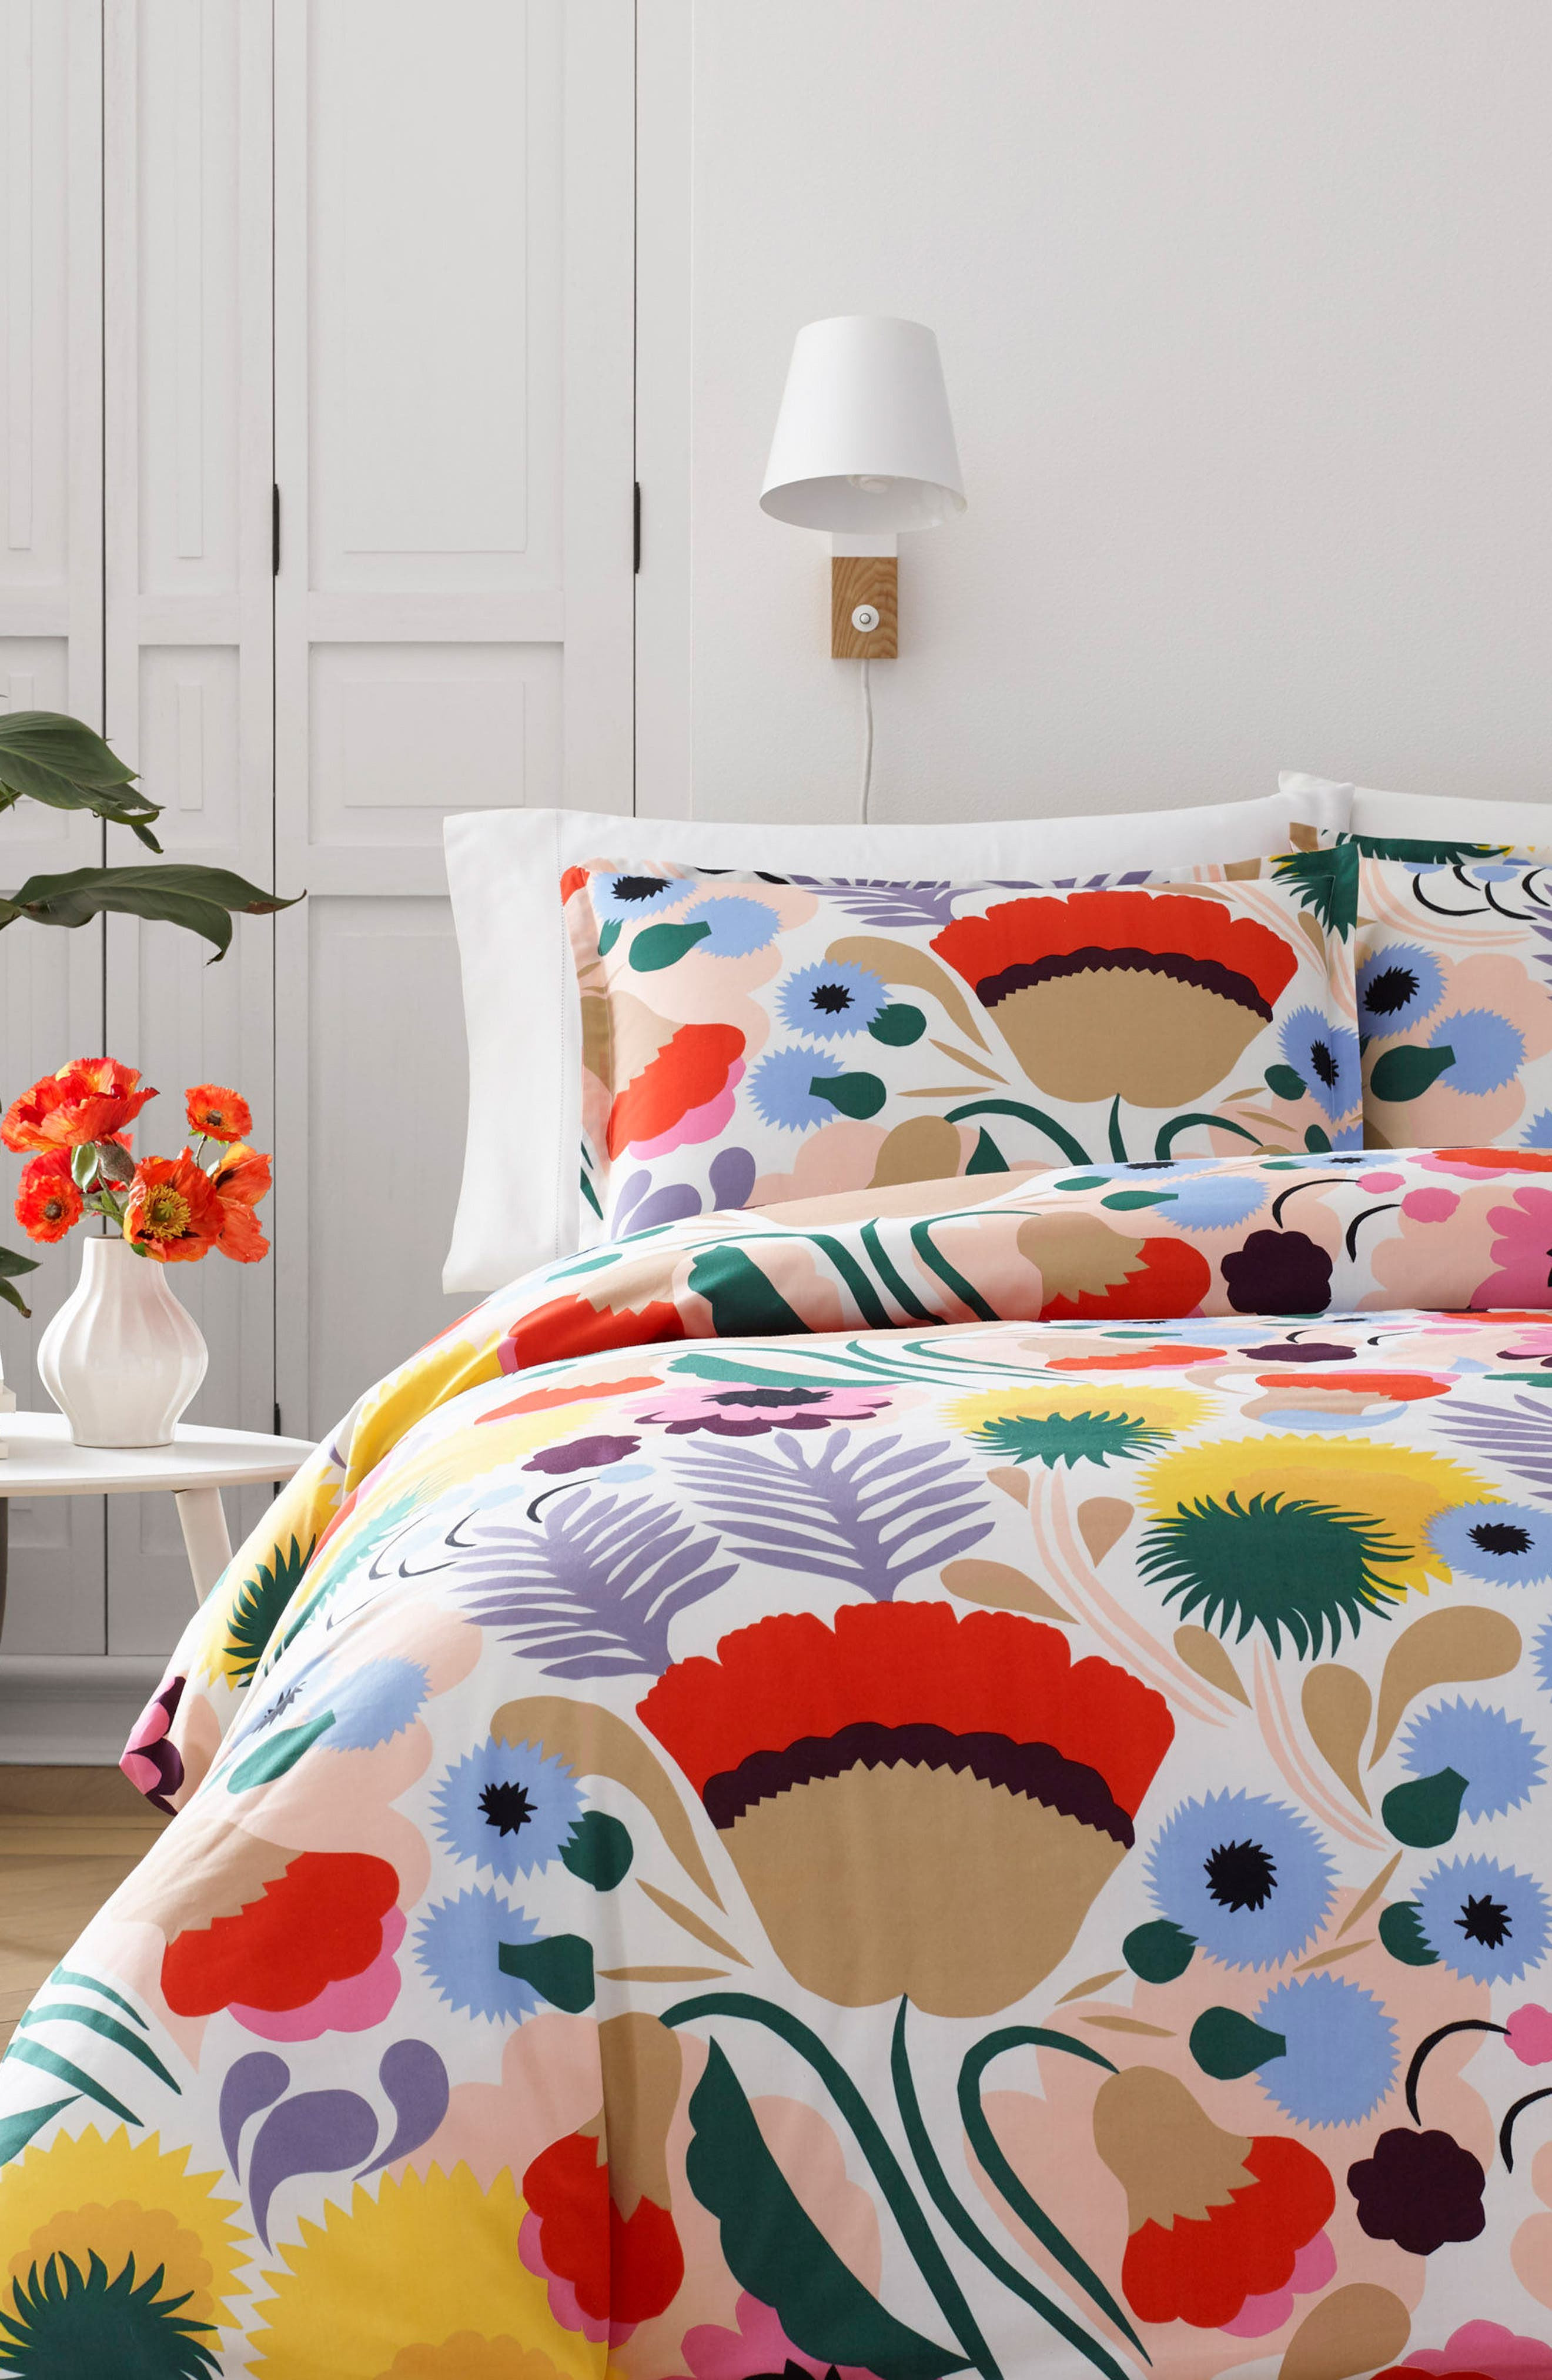 Ojakellukka Duvet Cover & Sham Set,                         Main,                         color, BLUE/ MULTI